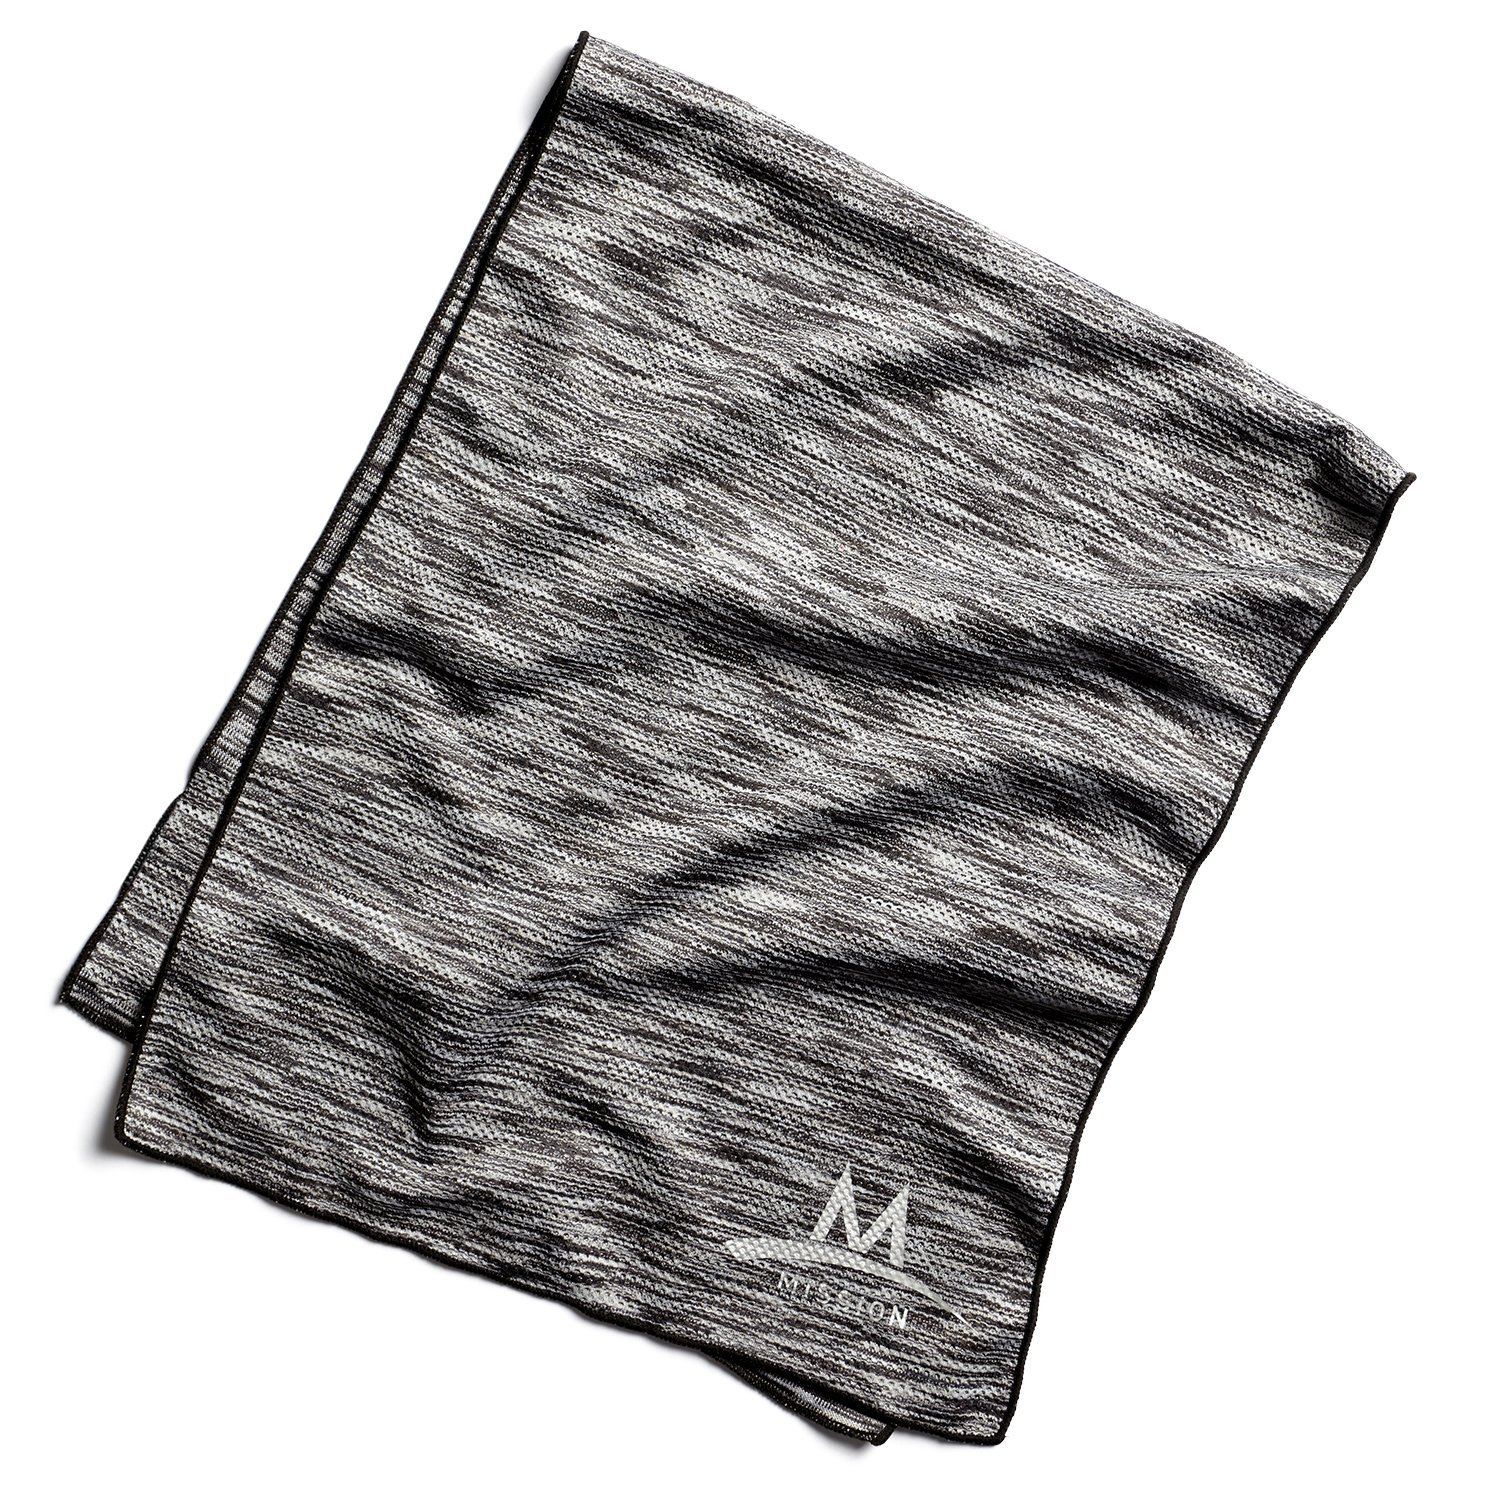 Mission Enduracool Techknit Cooling Towel, Black Space Dye, Large by MISSION (Image #1)